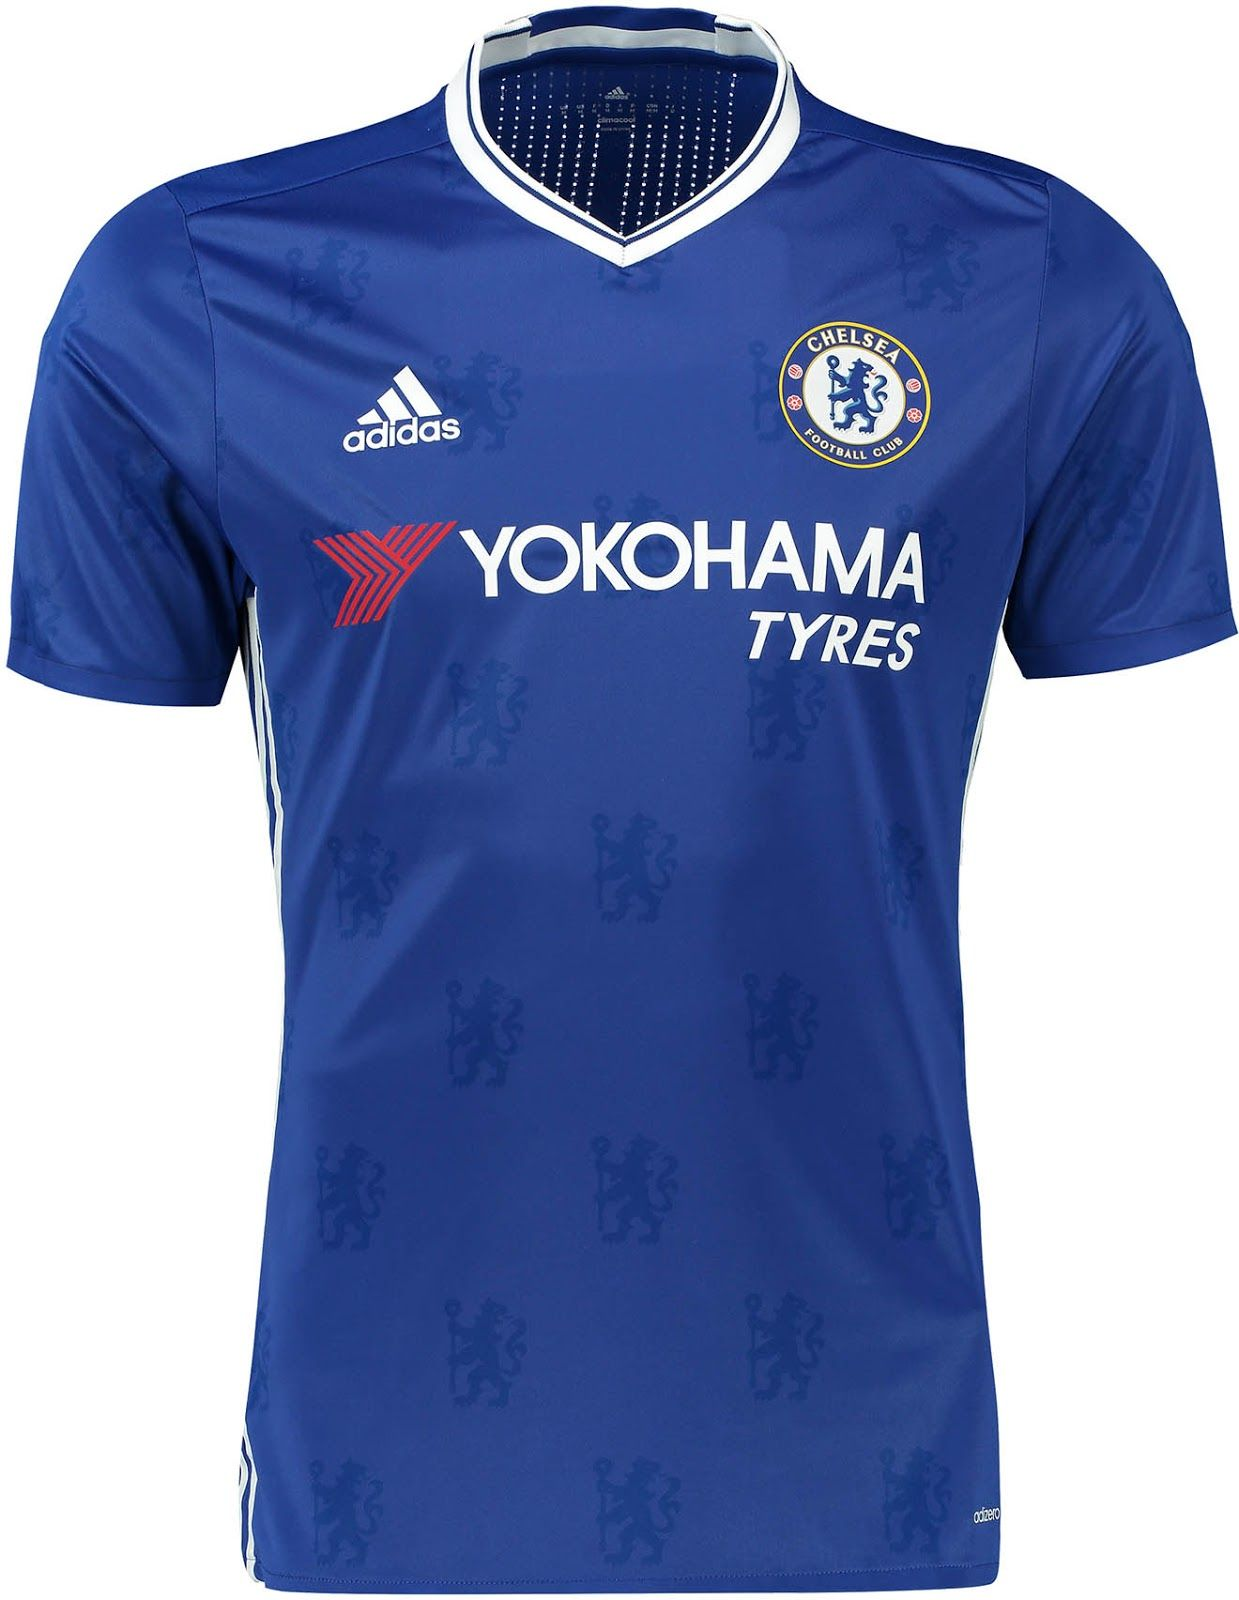 The Chelsea 2016 17 Home Kit Features An All Over Print Of Chelsea Lions Informed By The Club S Tradition And Le Jersey De Equipos De Futbol Soccer